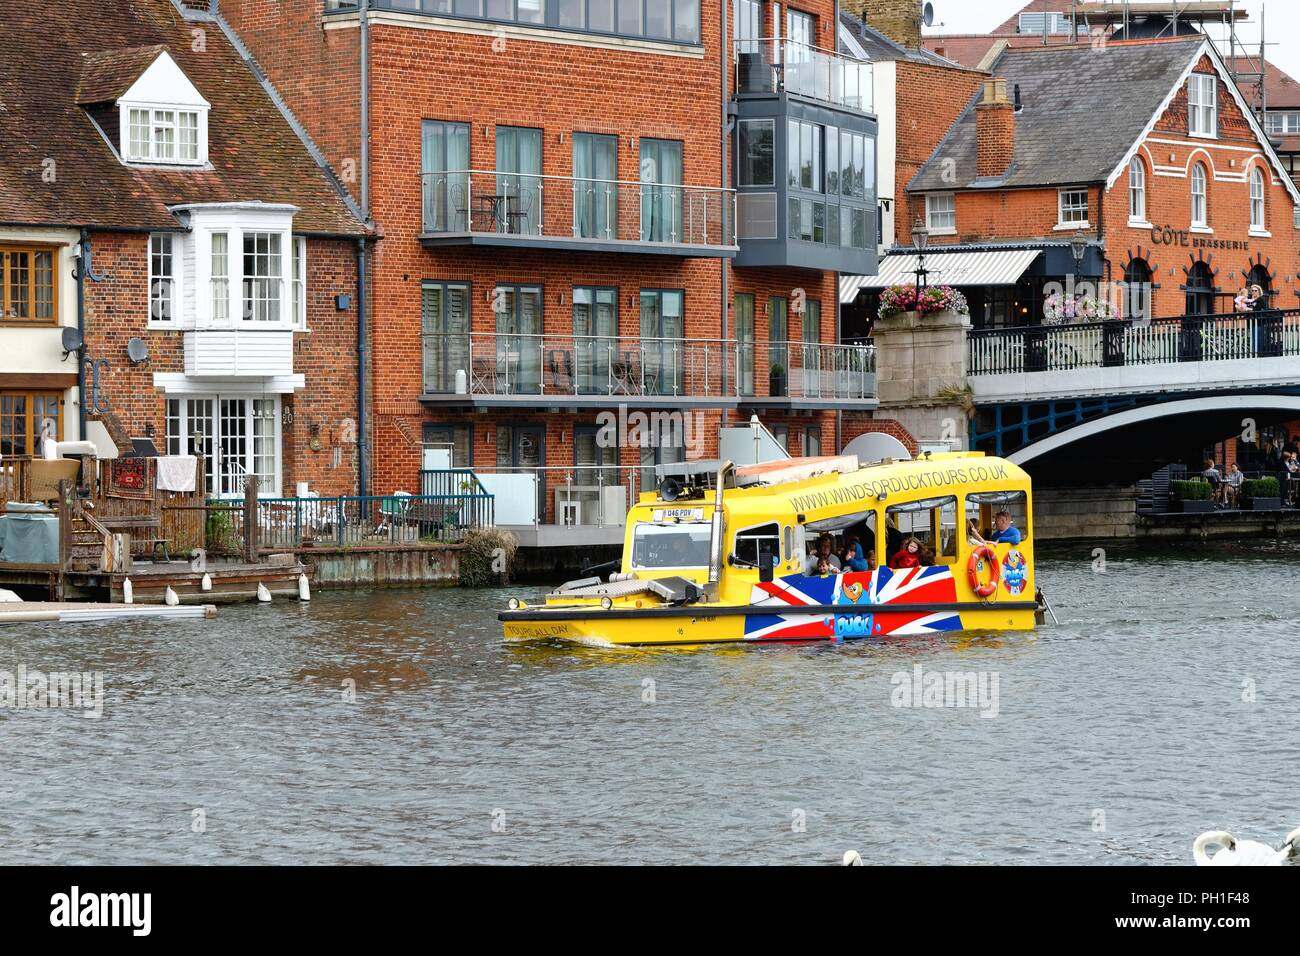 A Windsor Duck Tours amphibious boat on the River Thames at Eton and Windsor Berkshire England UK - Stock Image